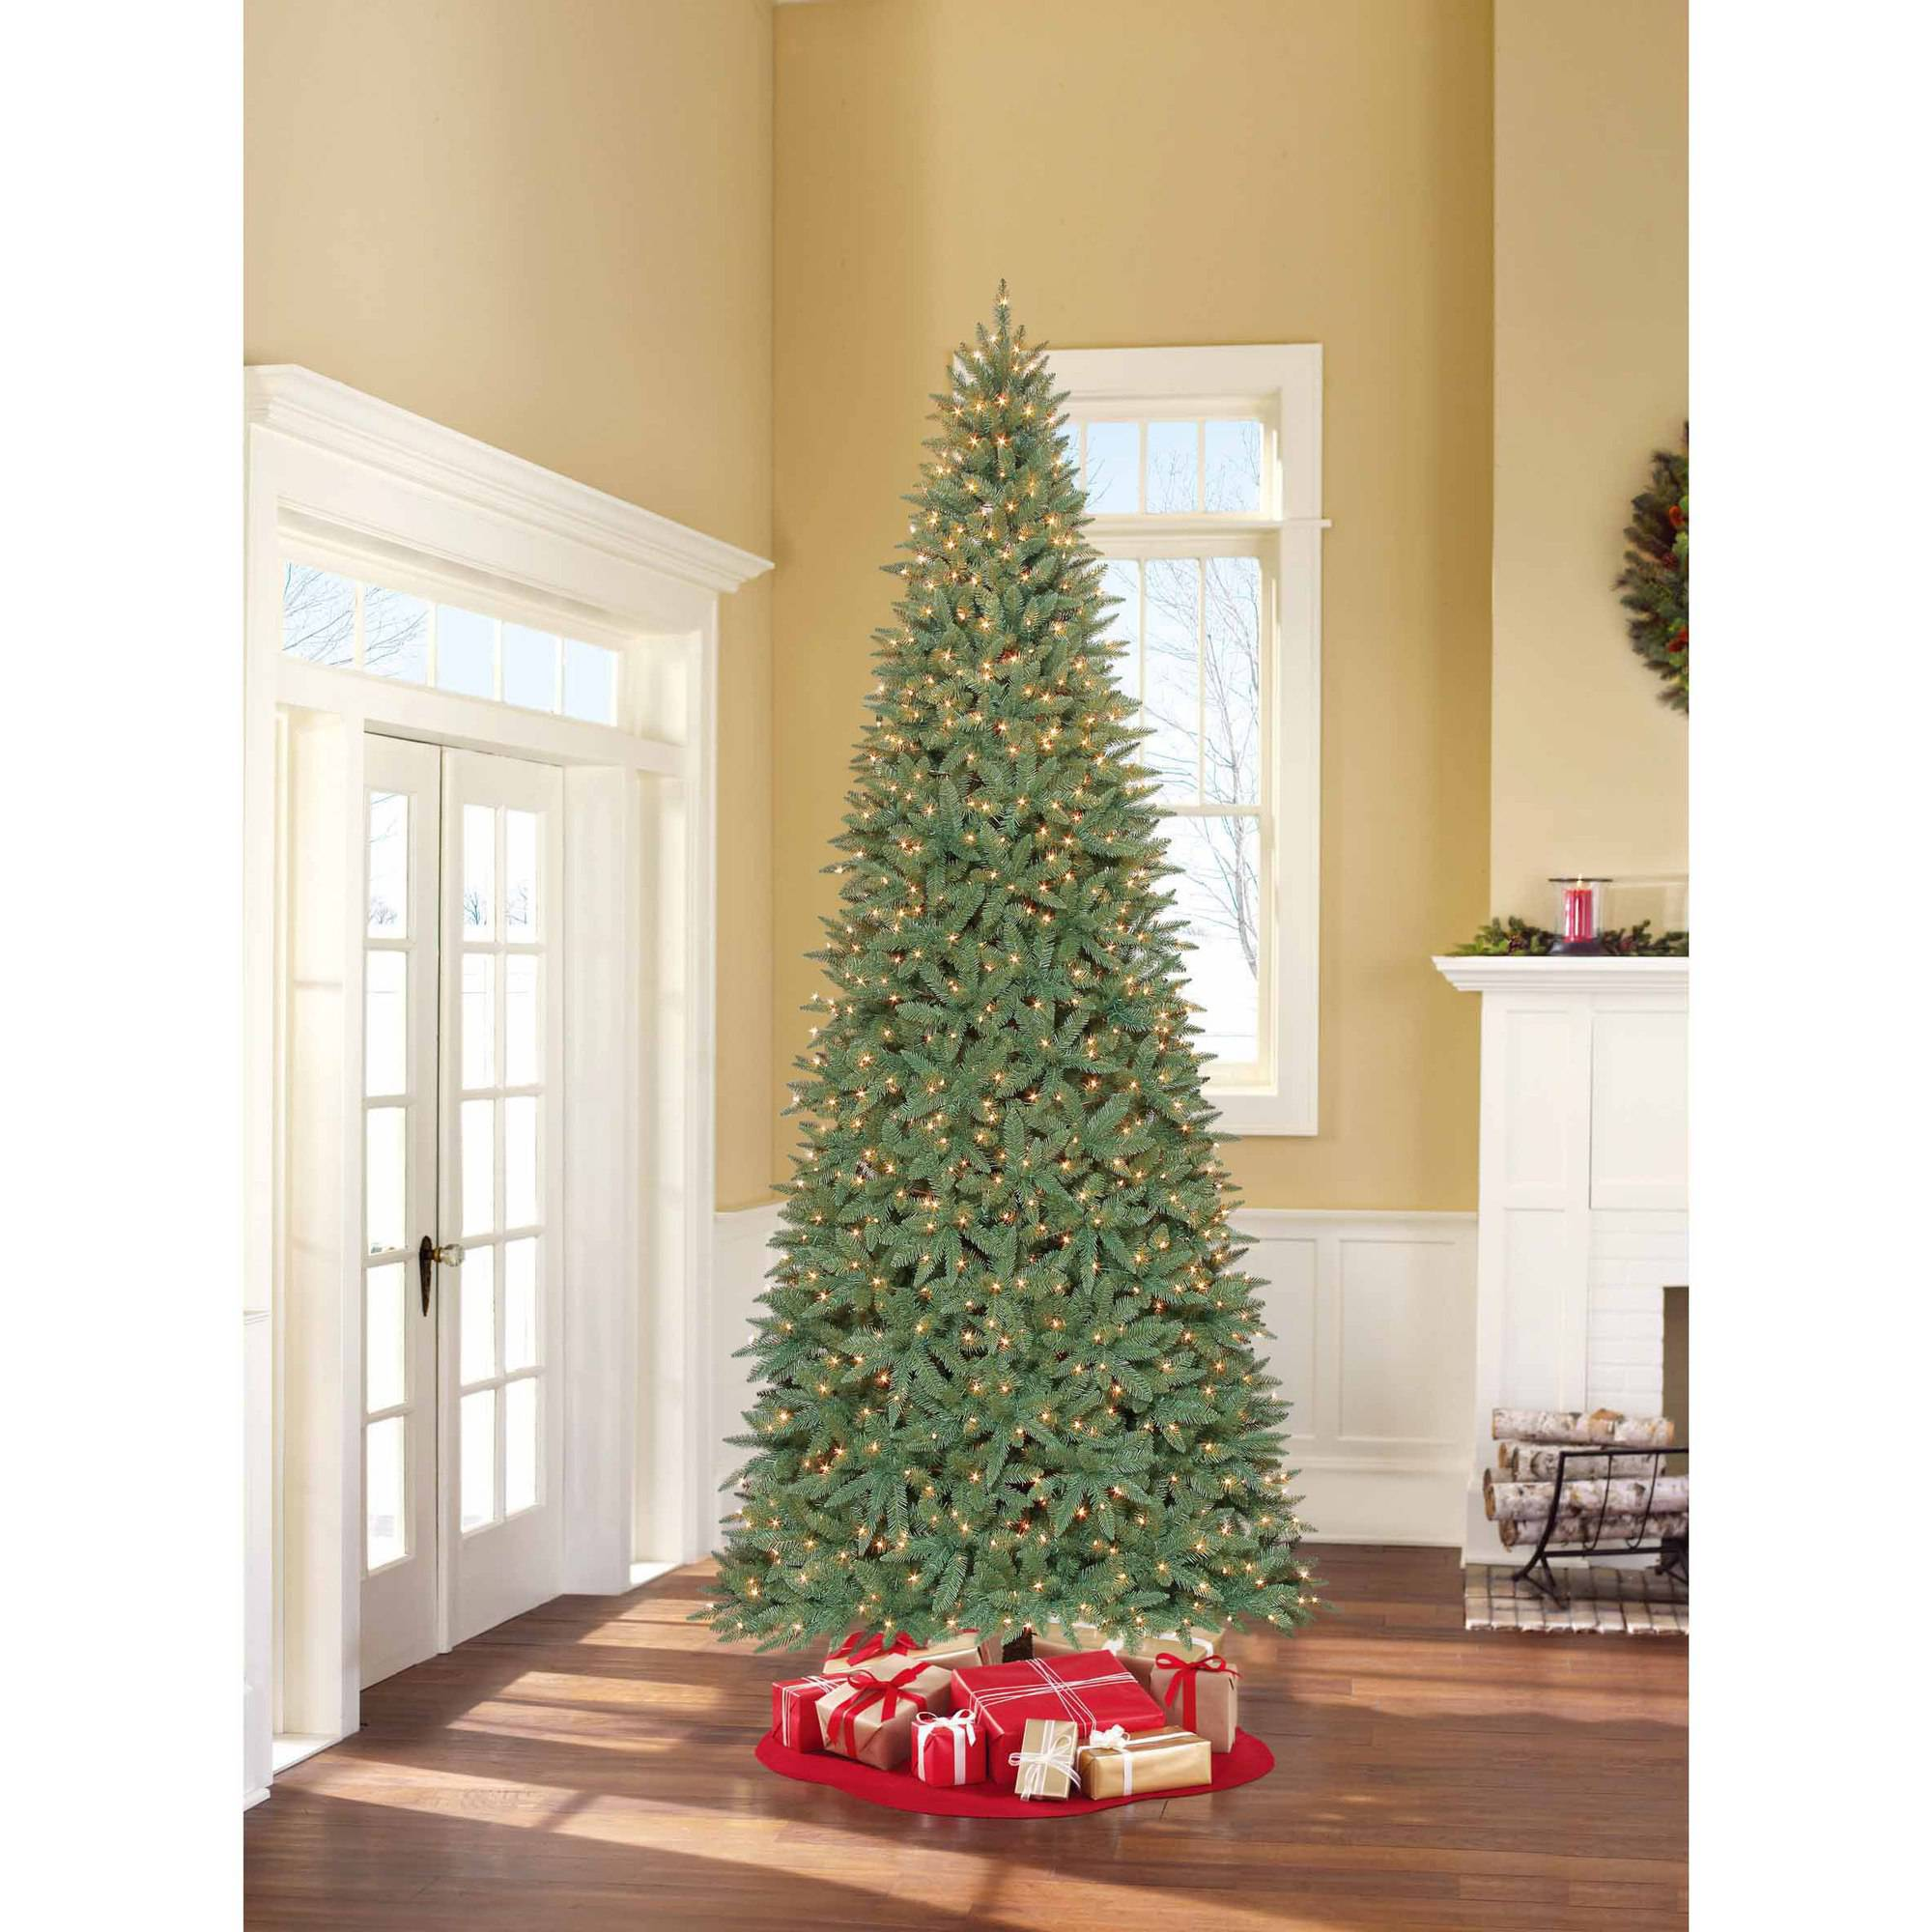 Best Choice Products 7 5FT Premium Spruce Hinged Artificial  - Artificial Christmas Tree 9 Ft